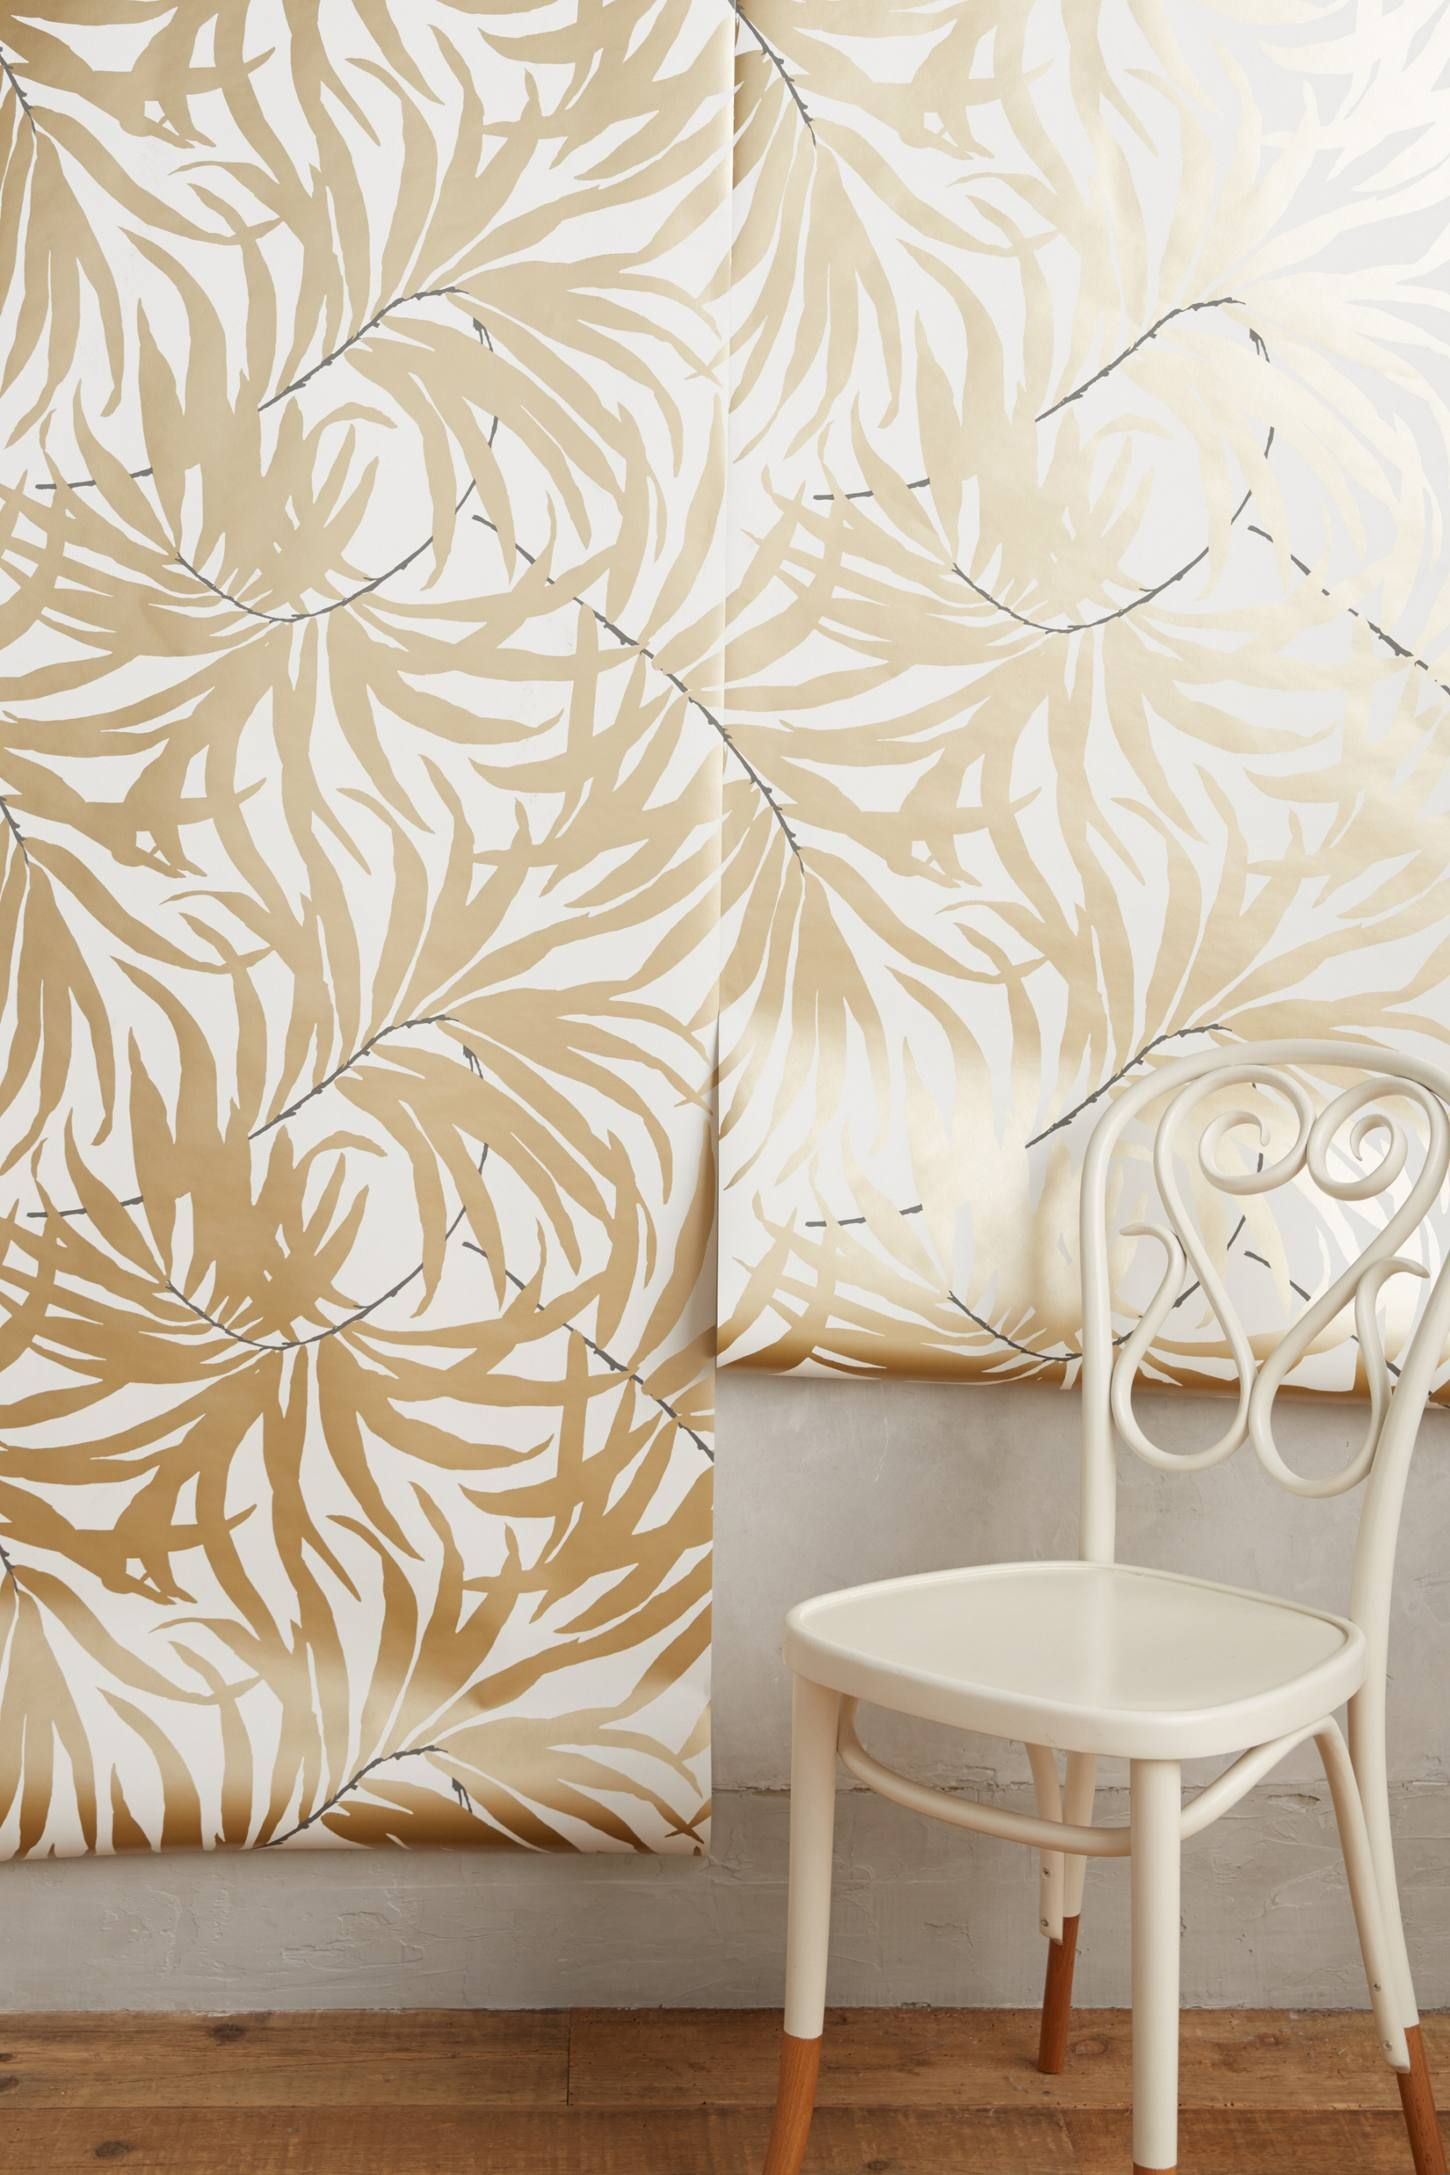 Frond Silhouette Wallpaper | Silhouette, Wallpaper and Bathroom things